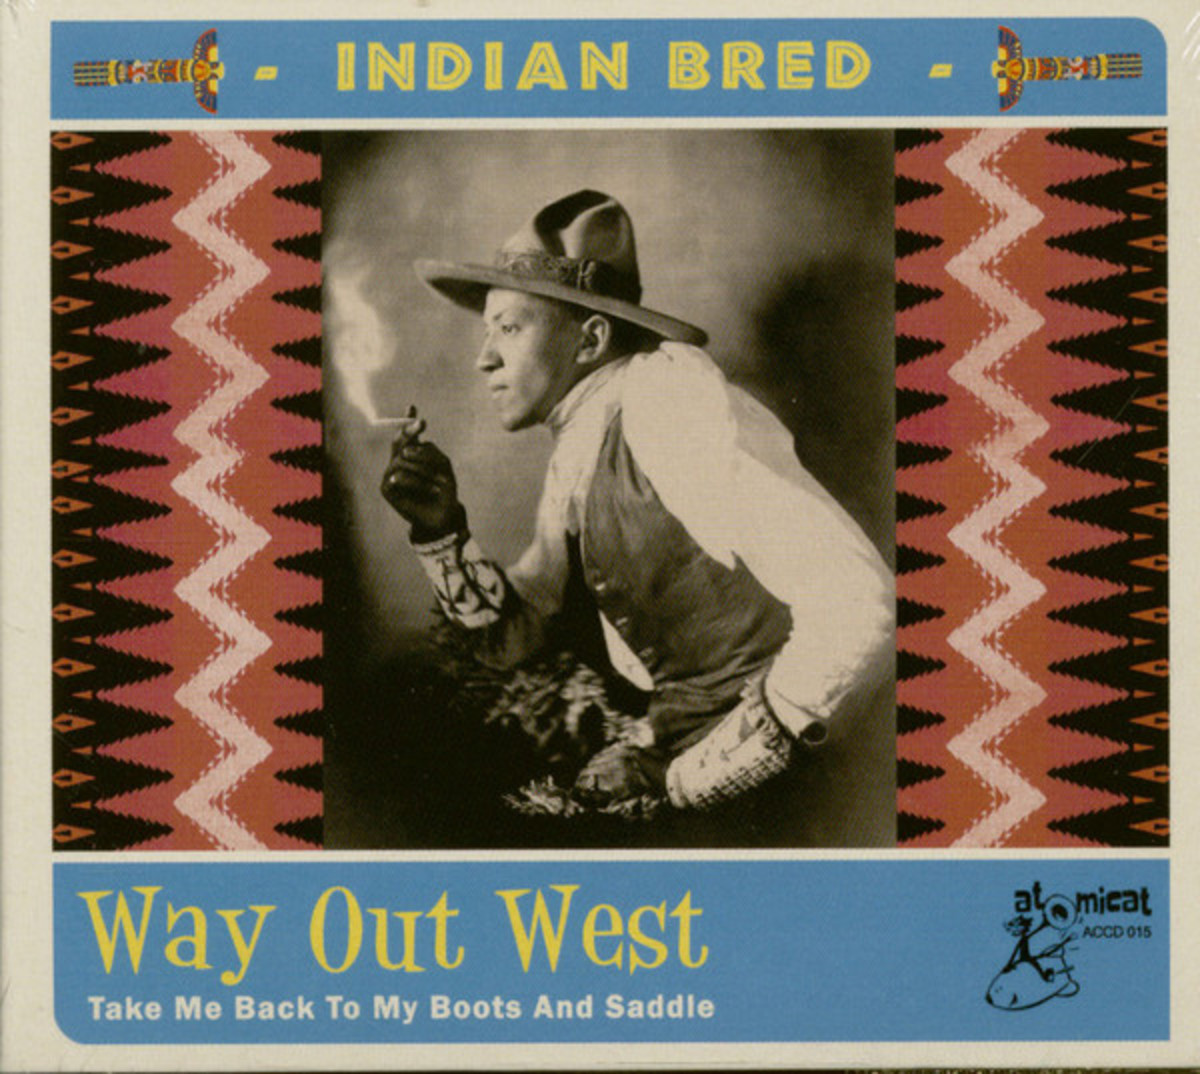 Way Out West- Take Me Back To My Boots And Saddles